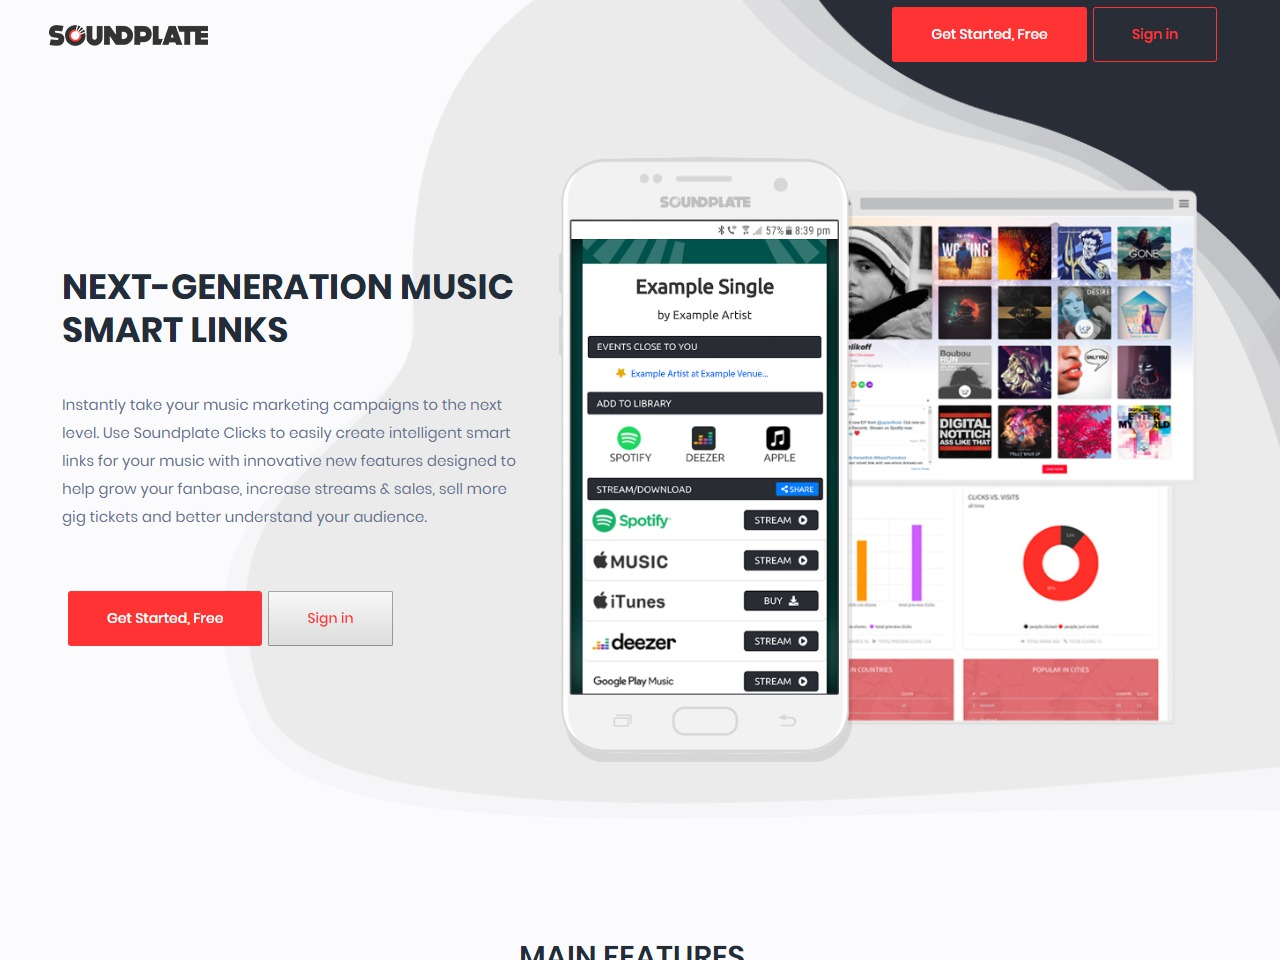 Soundplate Clicks Smart Links for Music Marketing